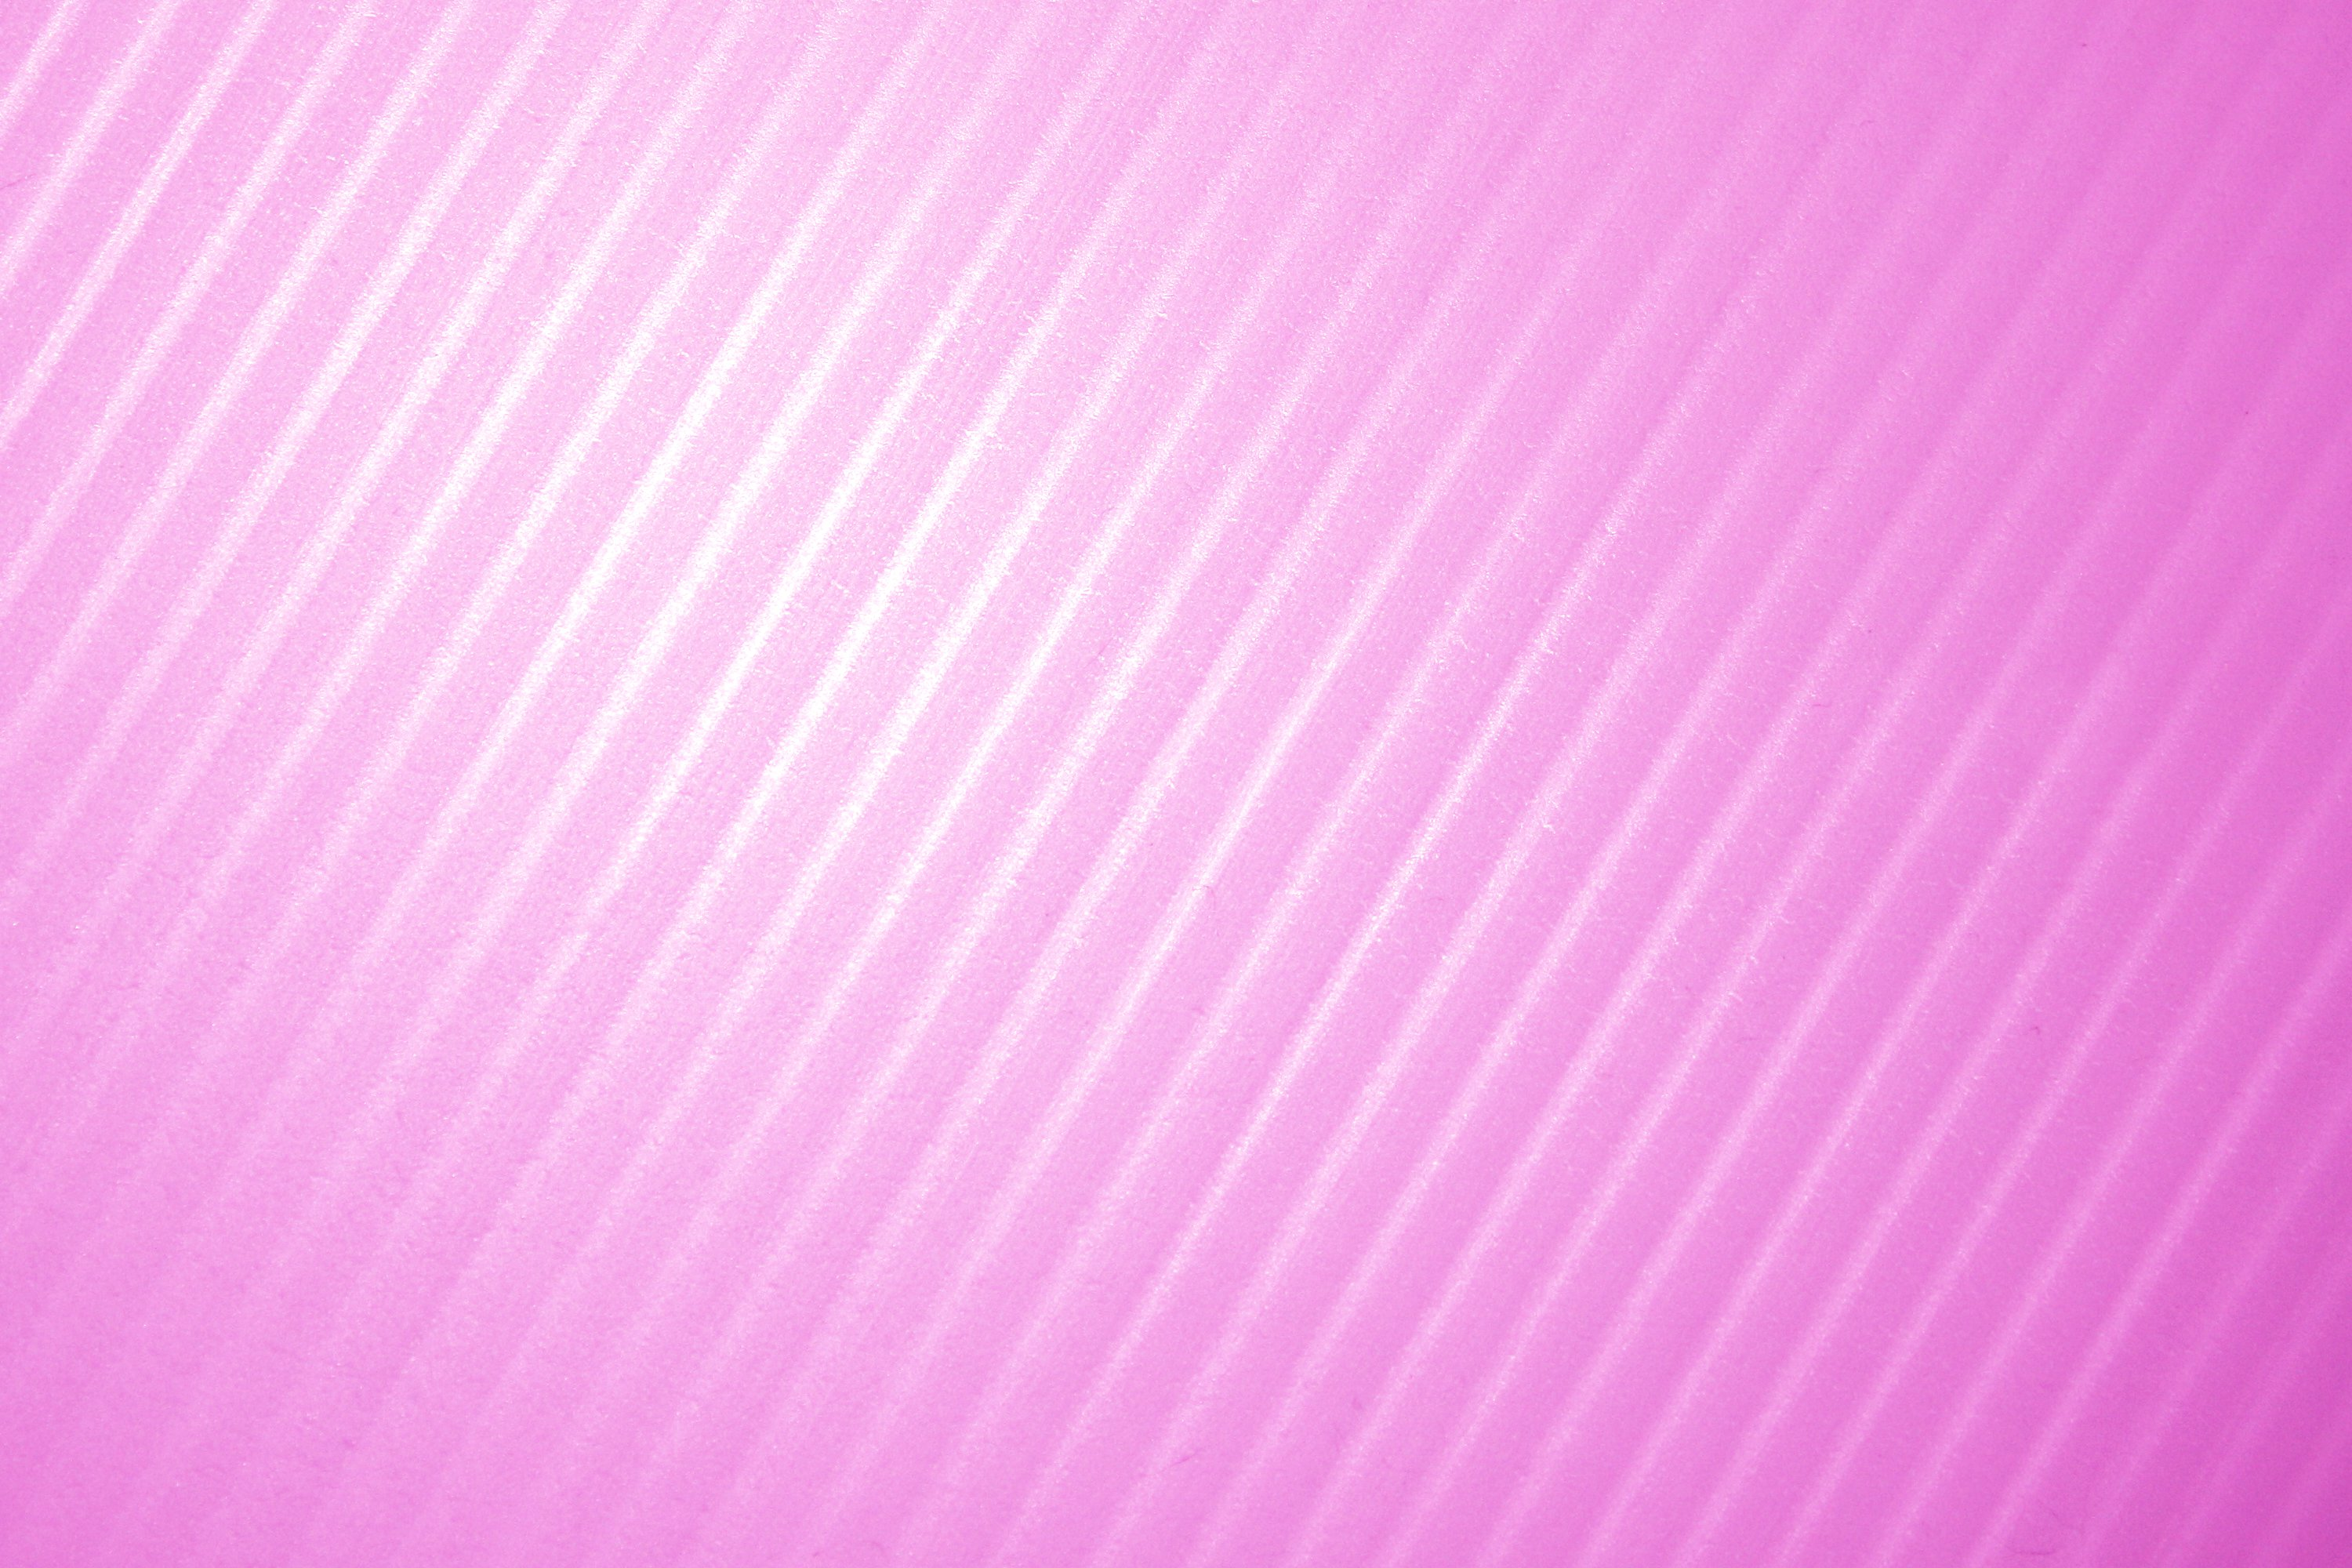 plastic material texture, plastic, download photo, pink plastic texture background